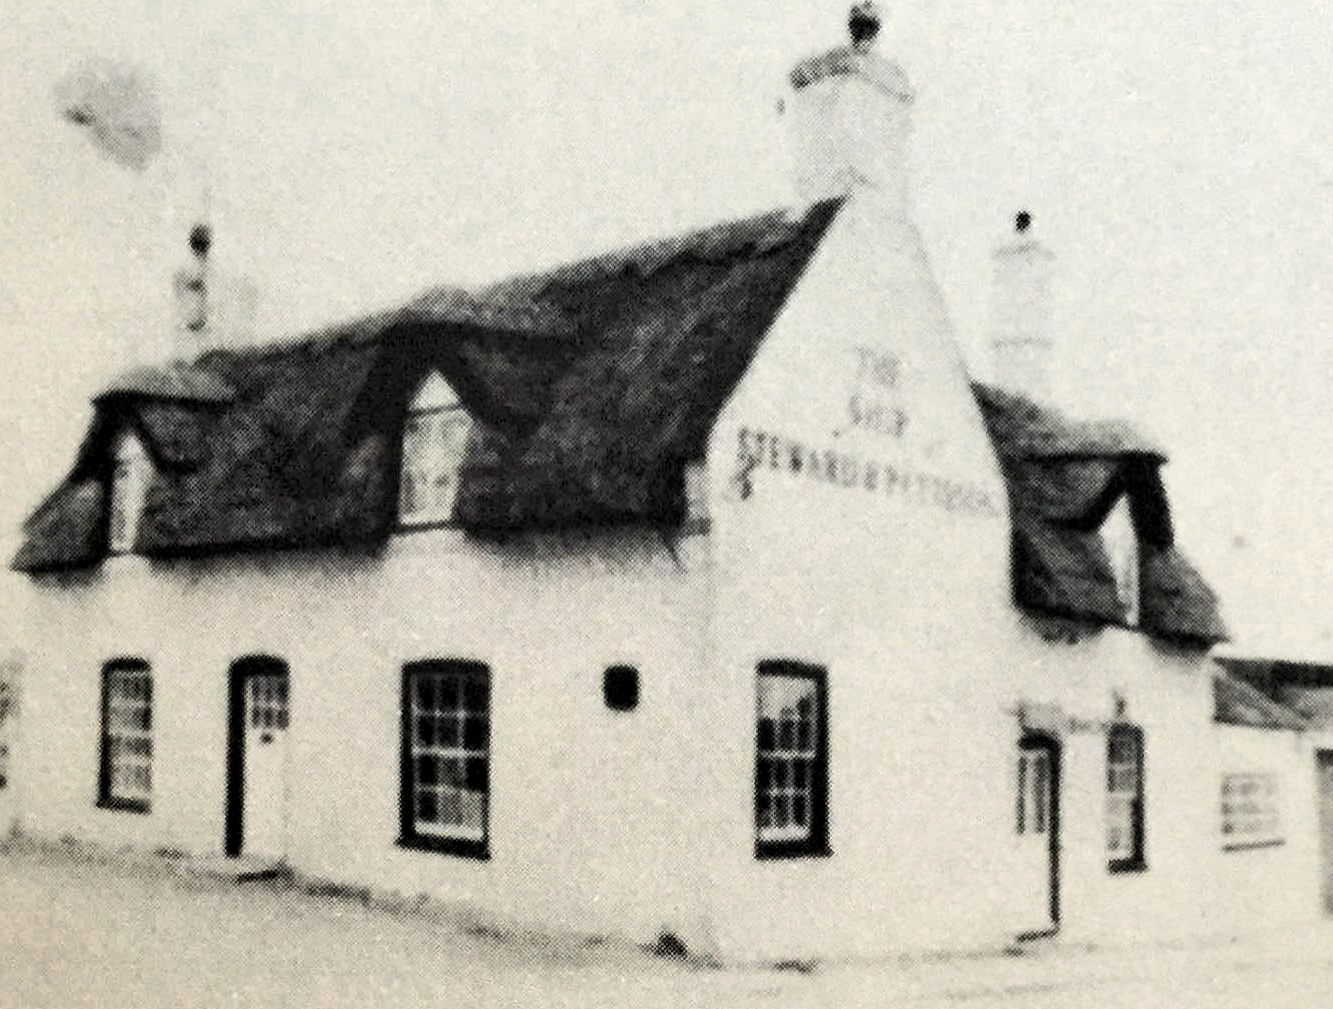 Photos of the Ship Inn Pinchbeck through time